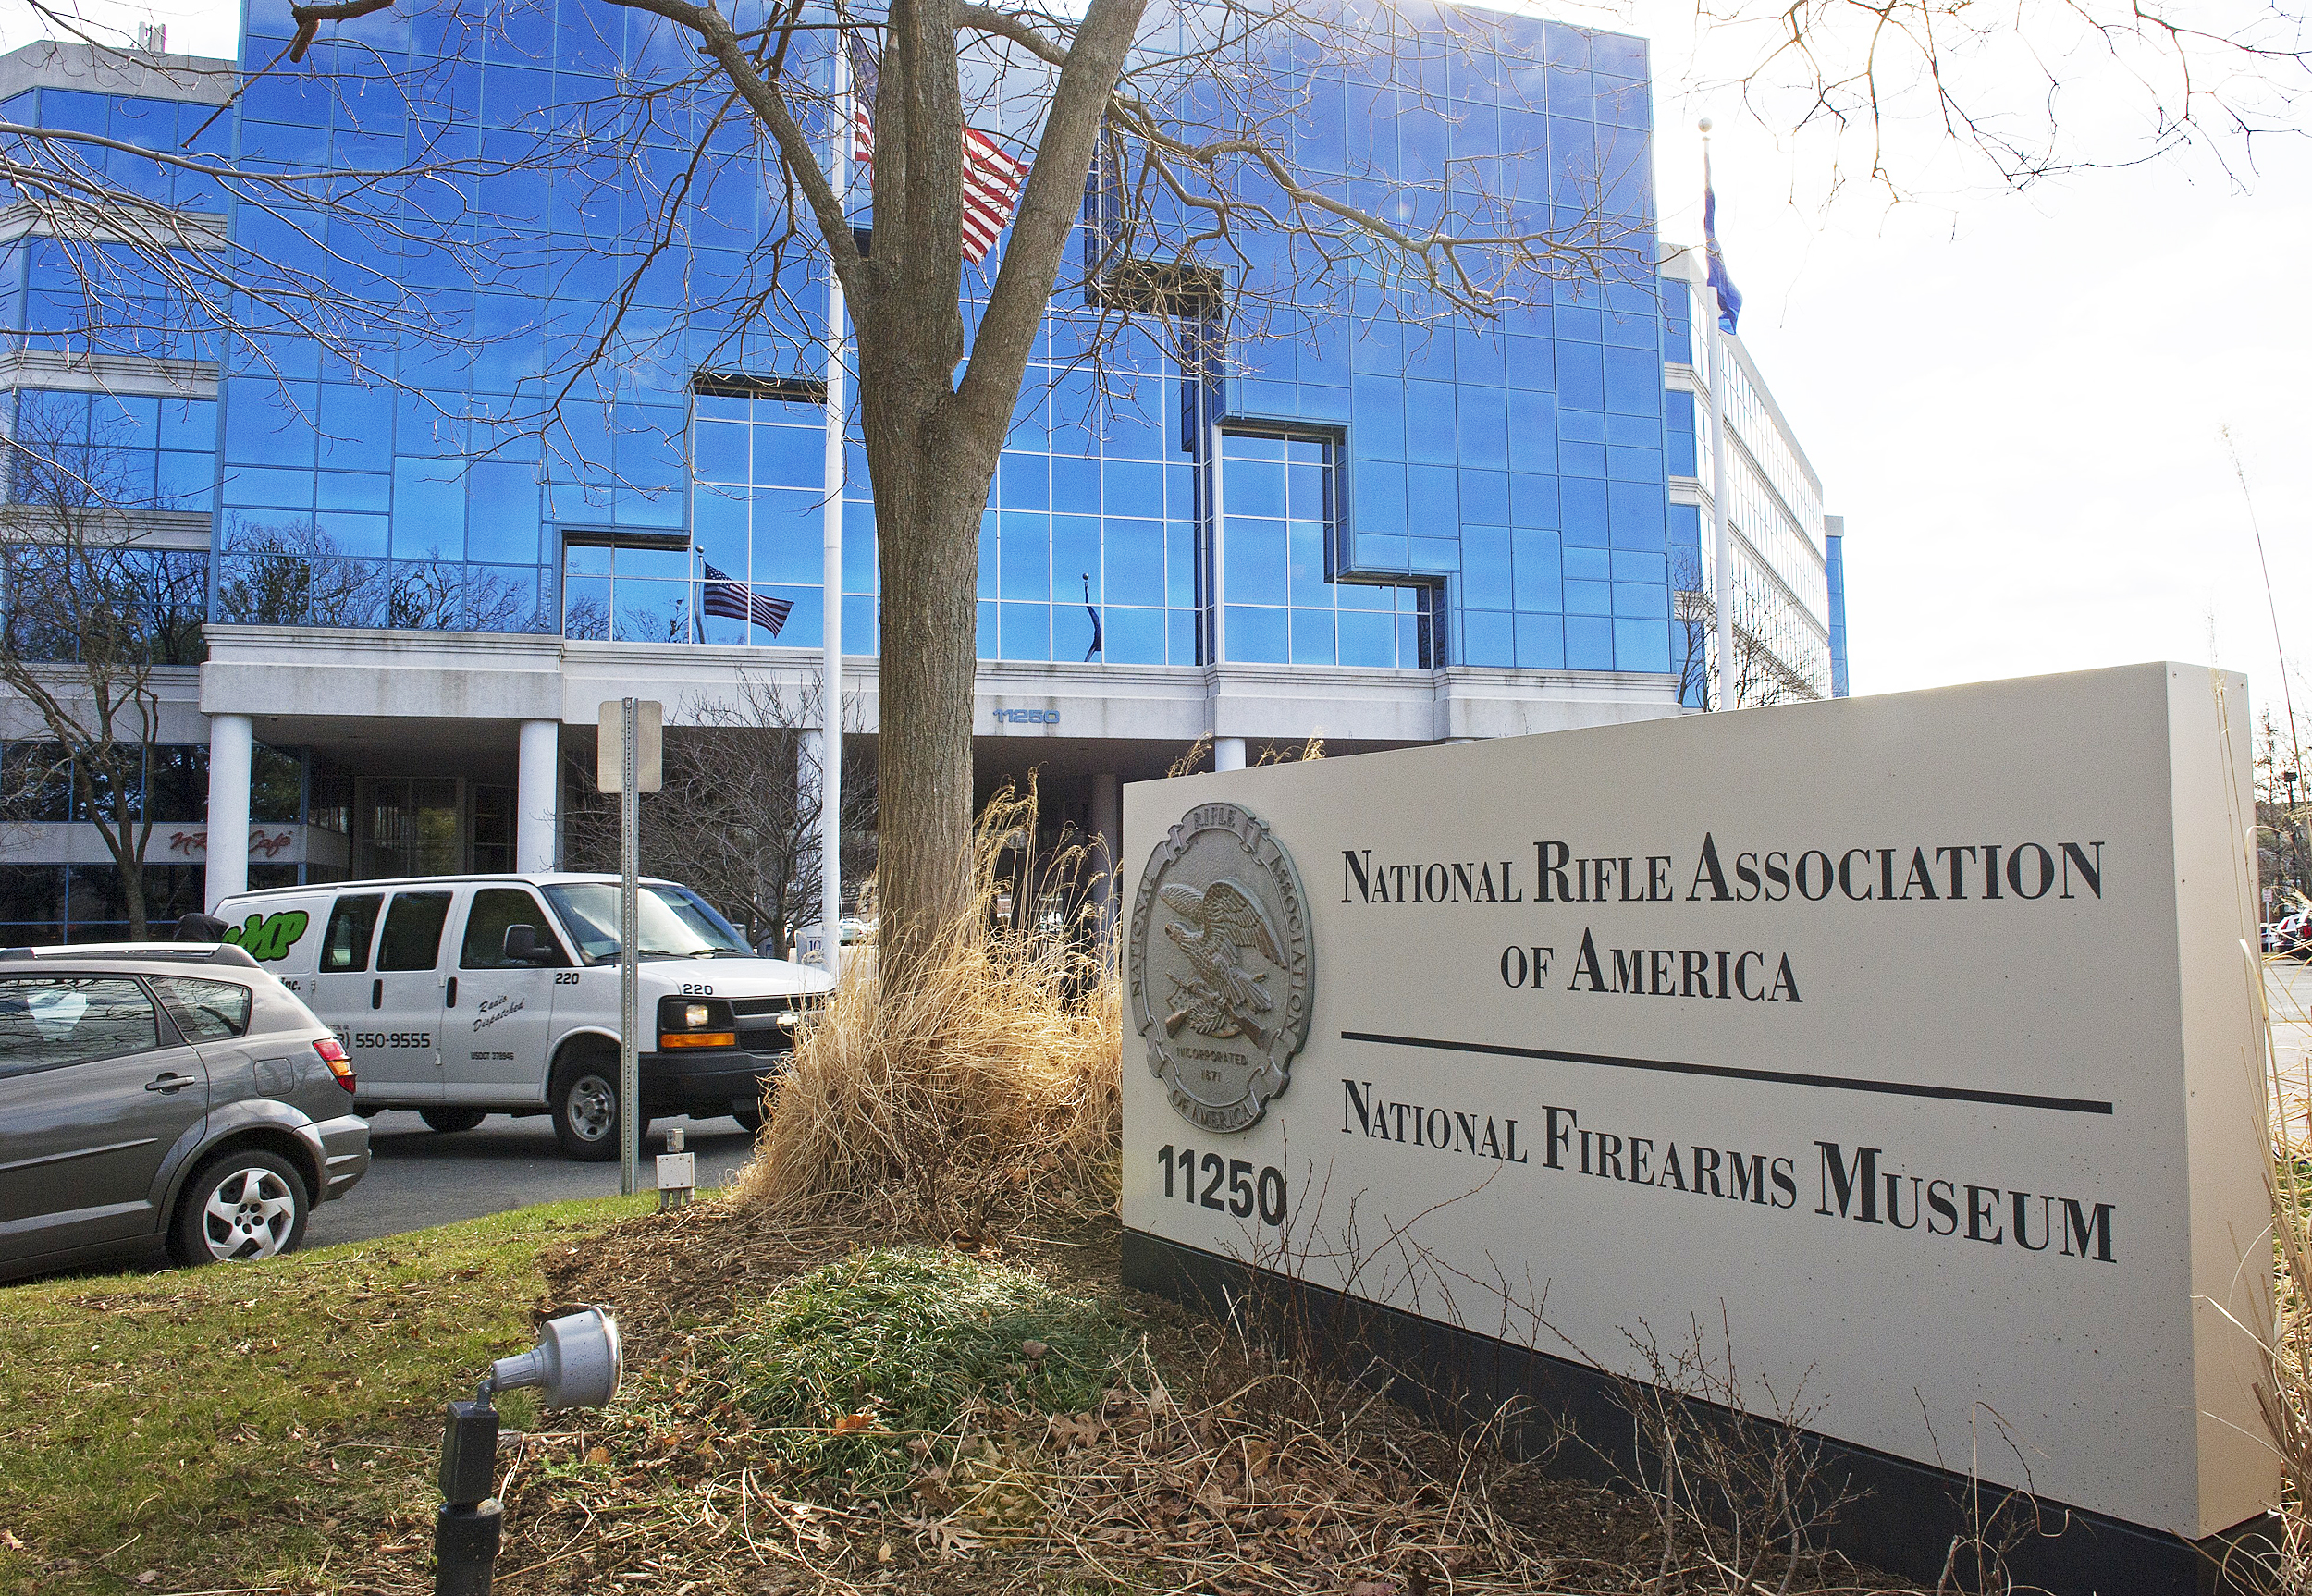 Image: The National Rifle Association (NRA) headquarters